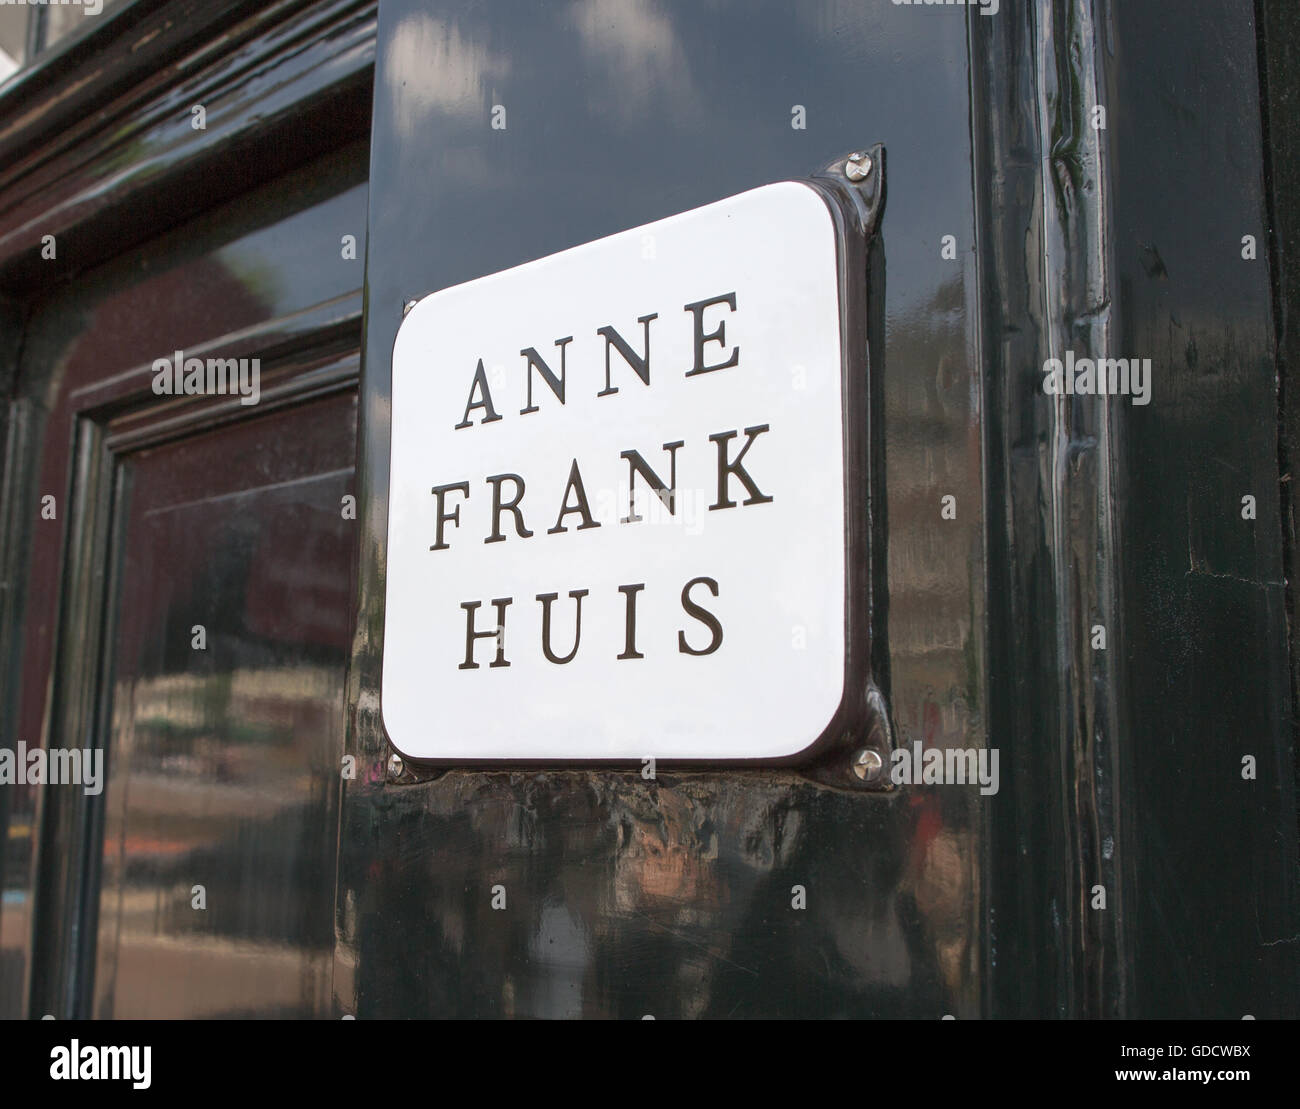 Anne Frank House Amsterdam Holland - Stock Image